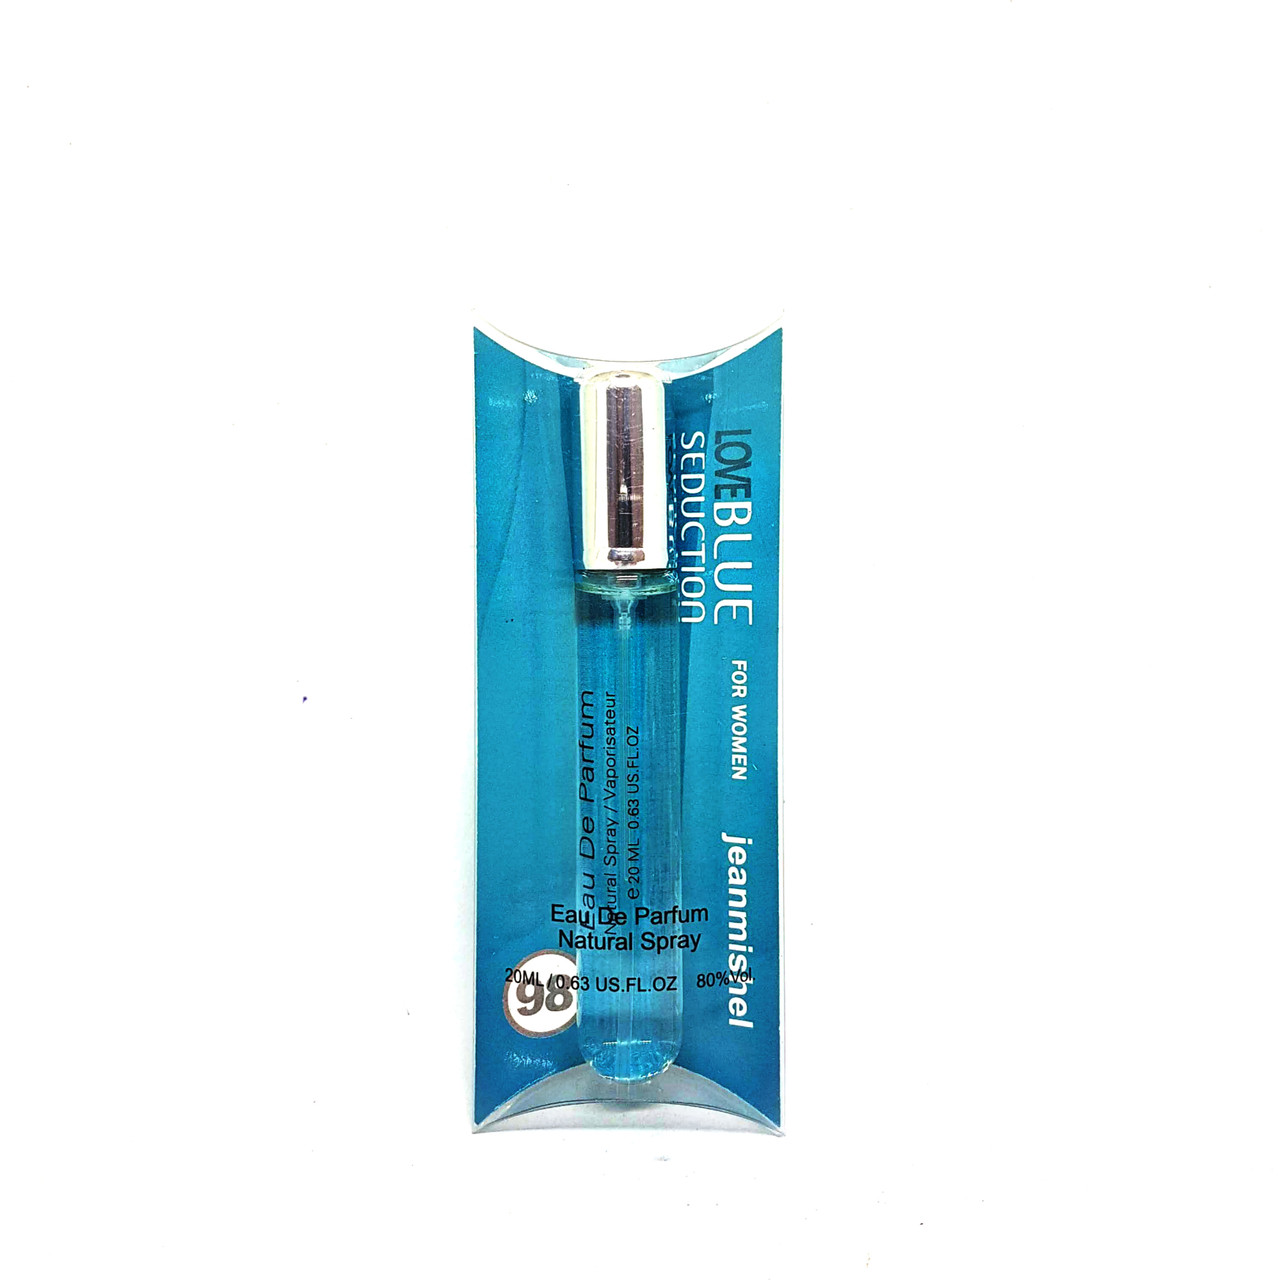 Jeanmishel Love Blue Seduction for women (98) 20ml